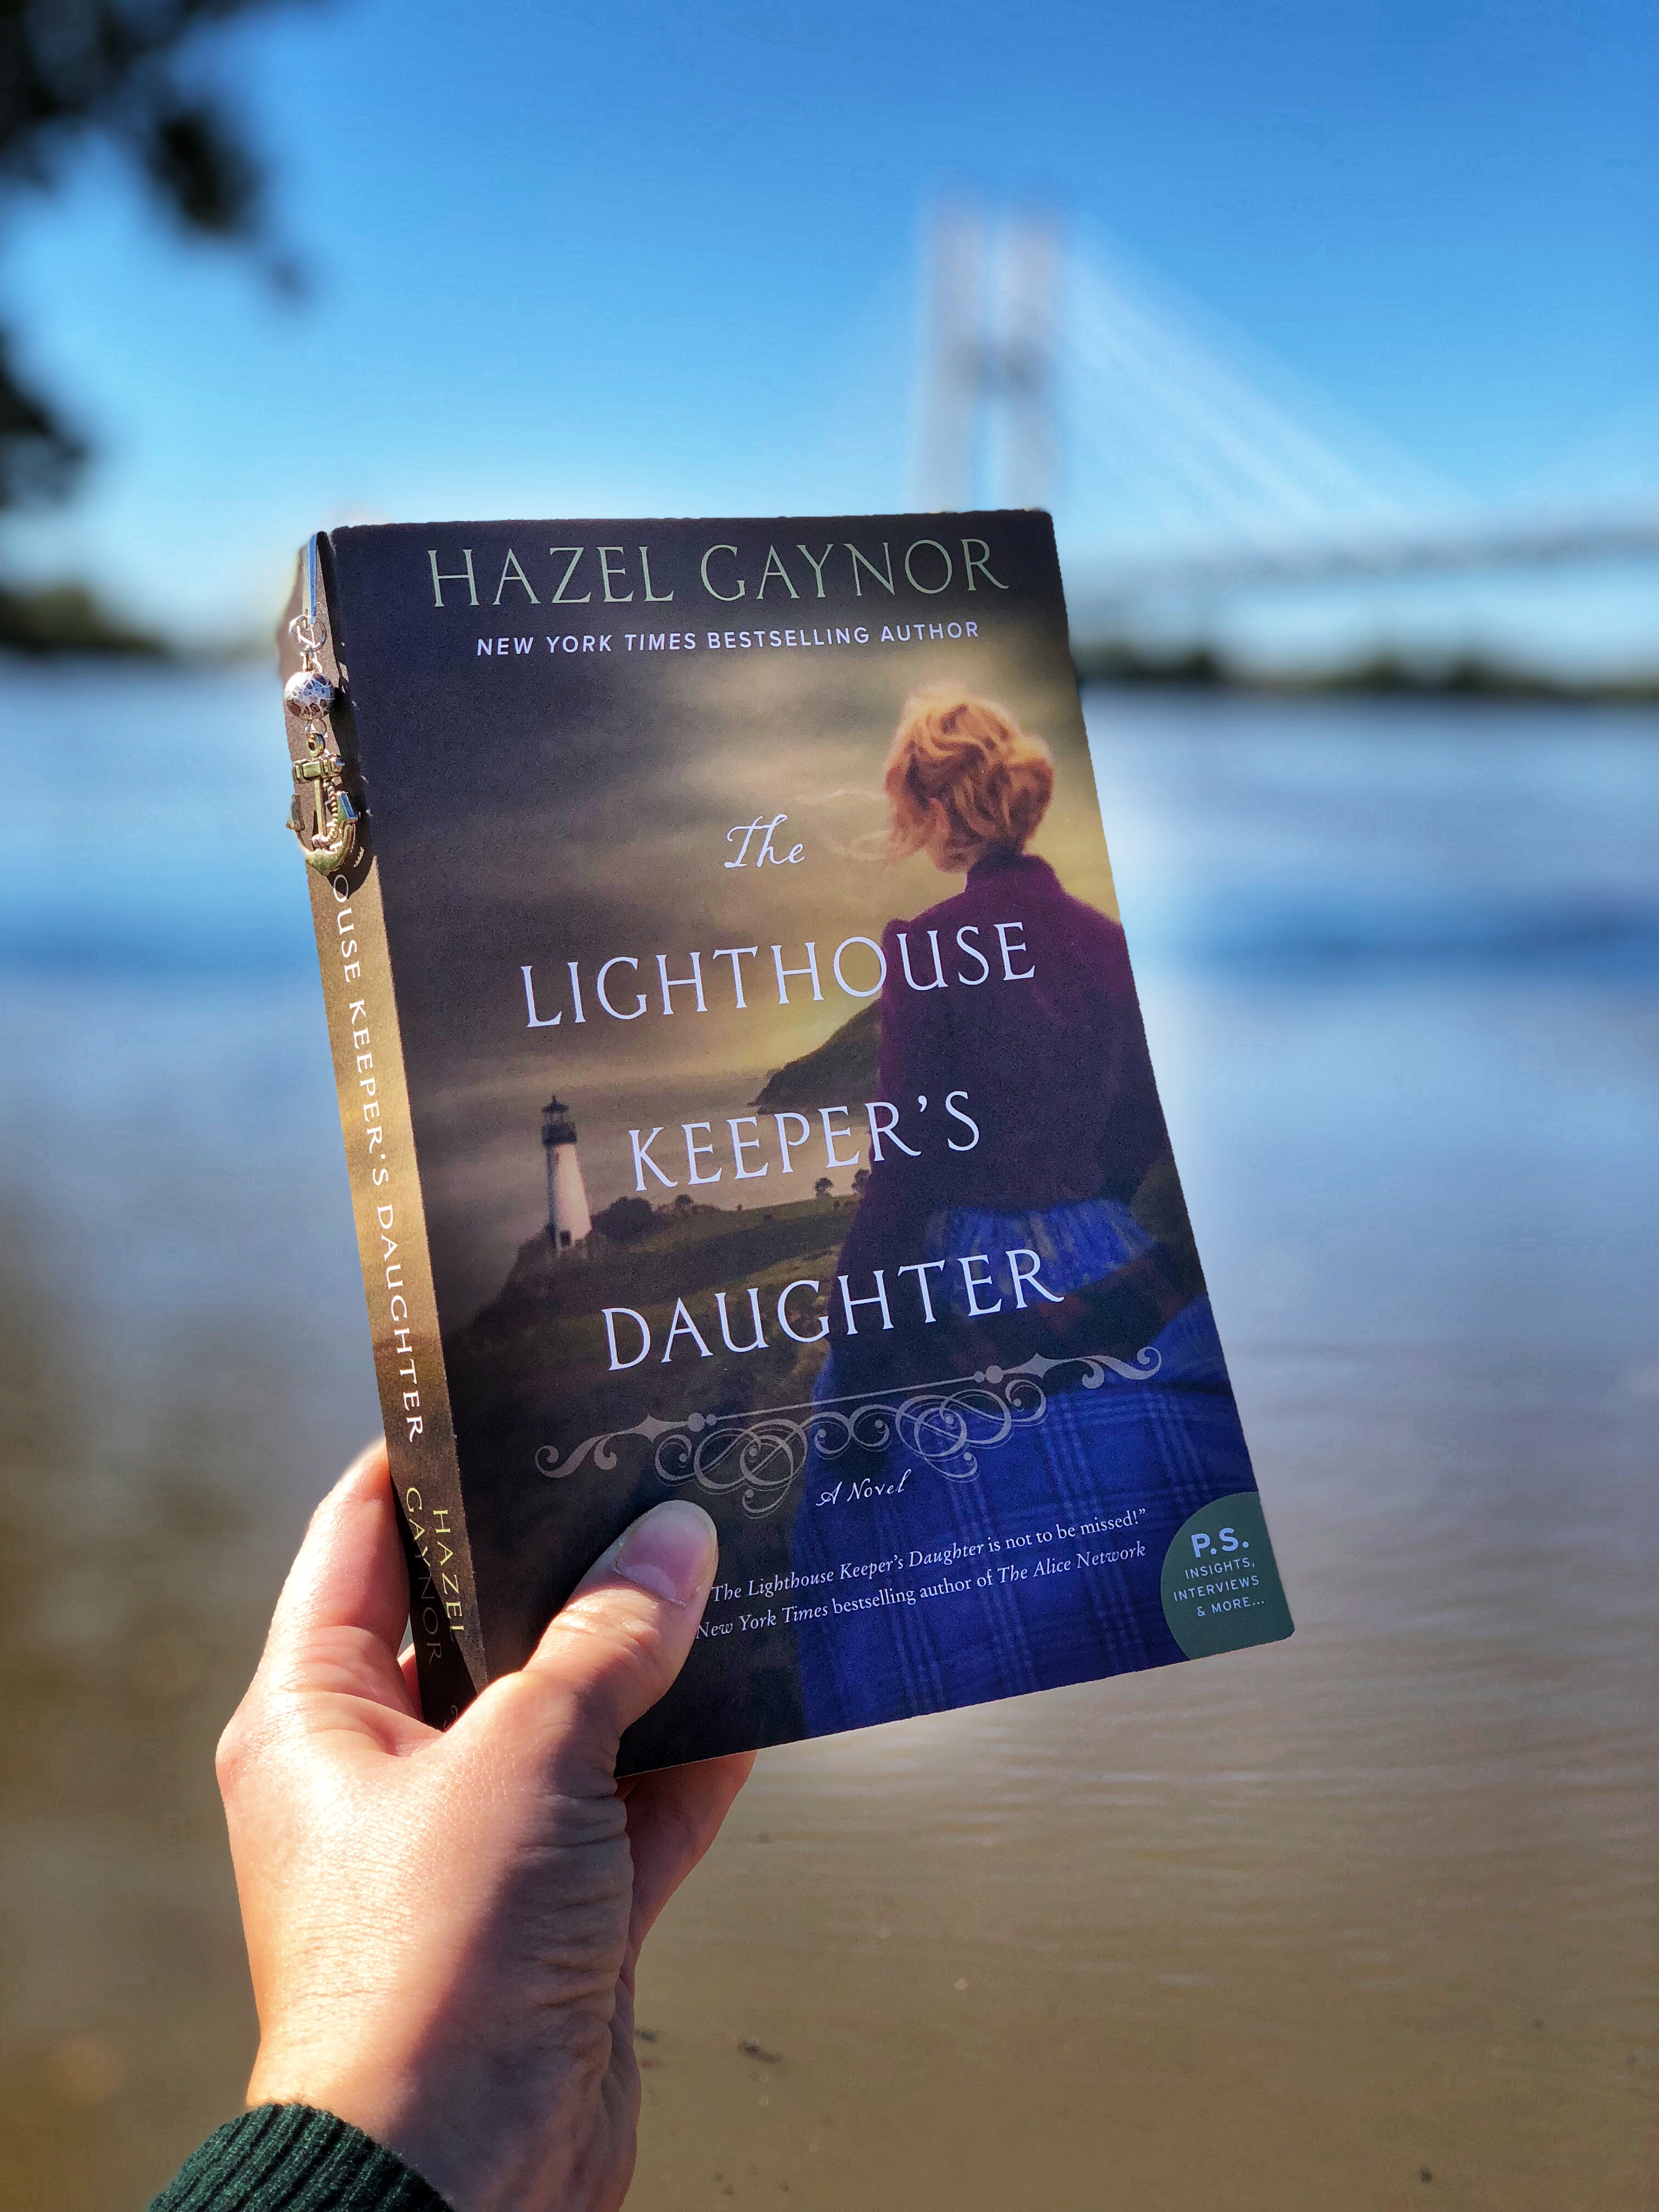 Review and Author Interview: The Lighthouse Keeper's Daughter by Hazel Gaynor